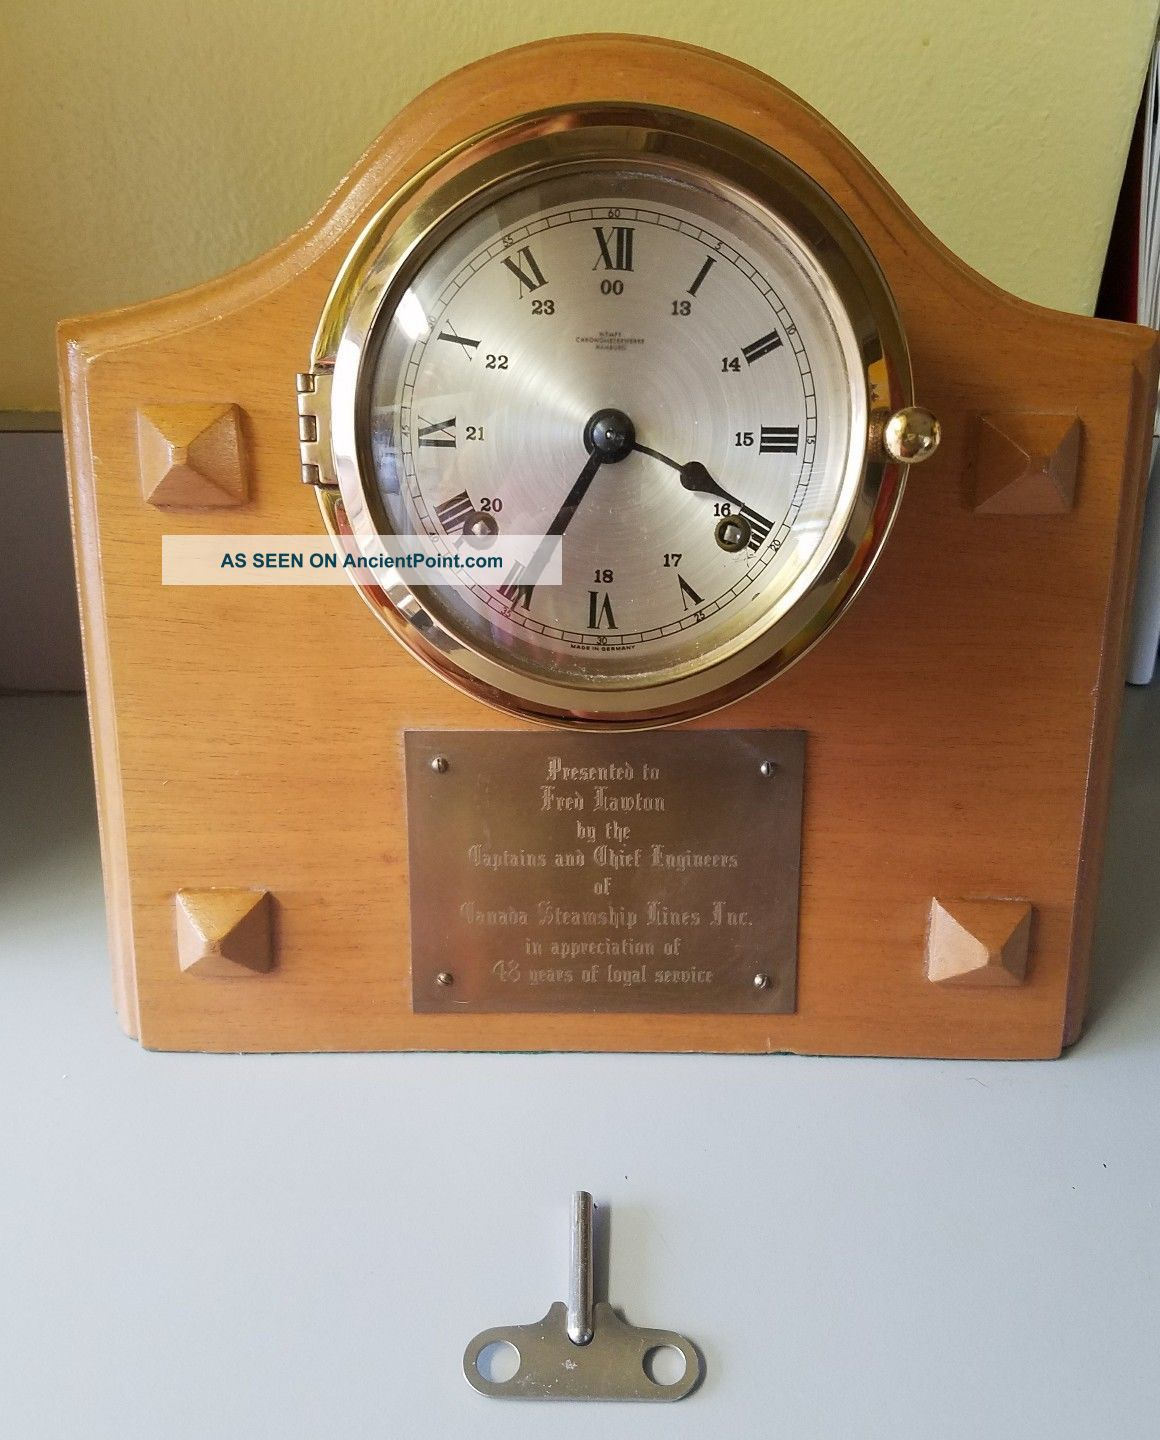 Key Run Wempe Chronometerwerke Brass Ships Bell 24hr Clock Off Canada Steamship Clocks photo